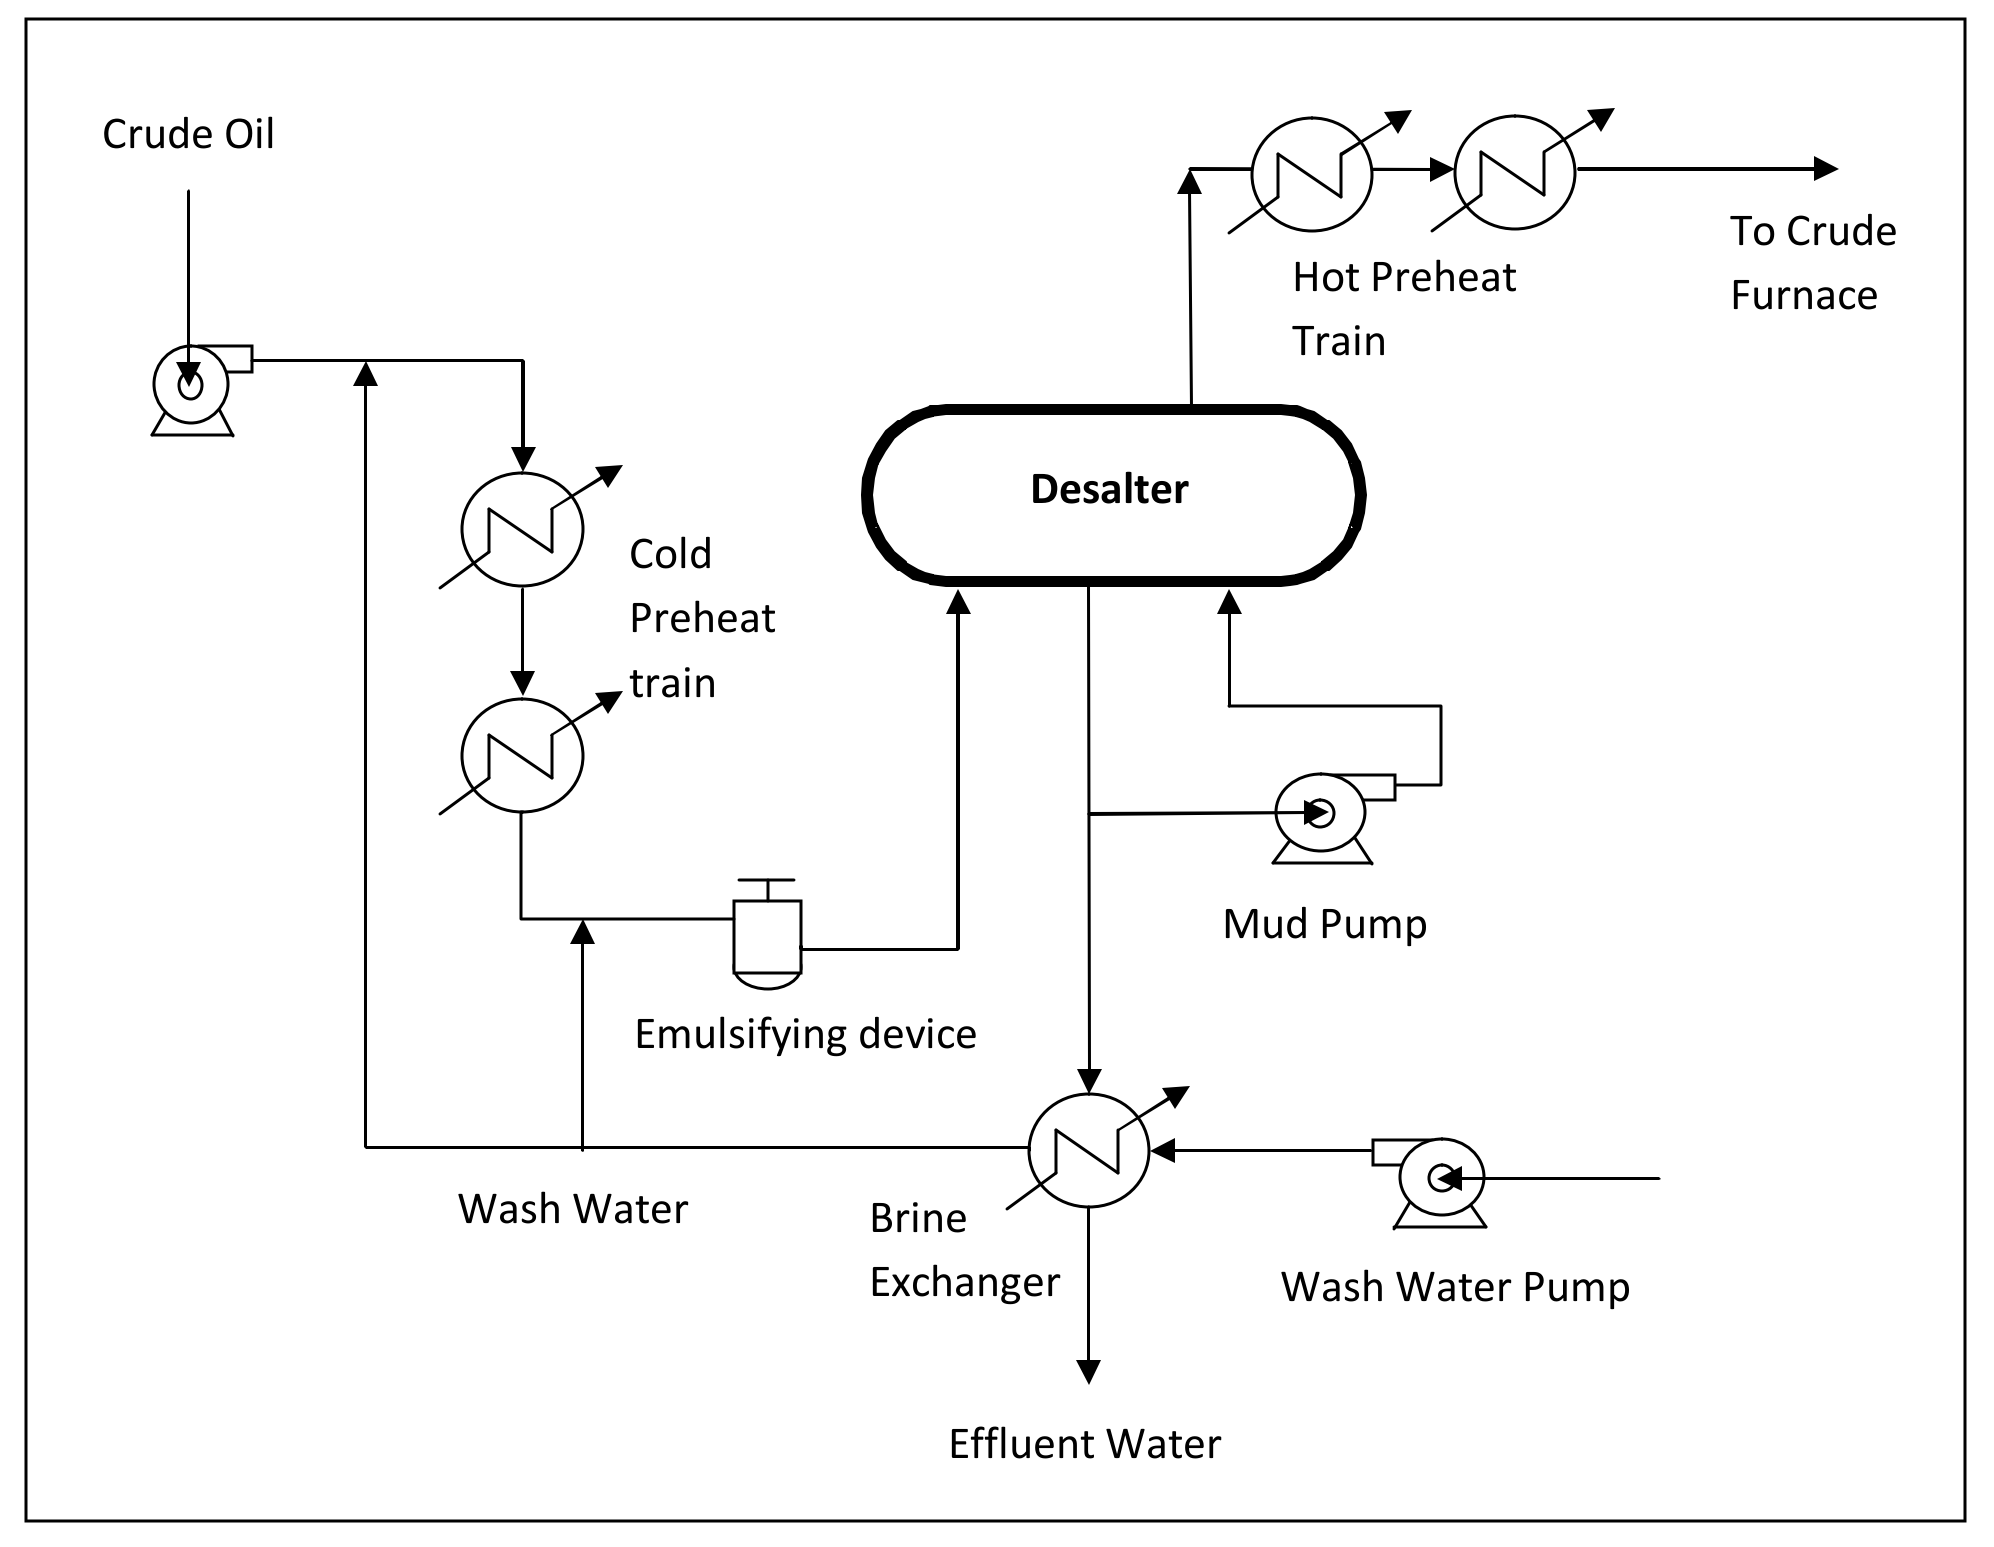 plant boiler diagram free image about wiring and with Water Treatment Schematic Diagram on Water Turbine Schematic in addition Pfd Pid  parison moreover Simple Steam Engine Diagram in addition Basic Electrical Schematic Abbreviations also Why Is Cooling Much Harder Than Heating.